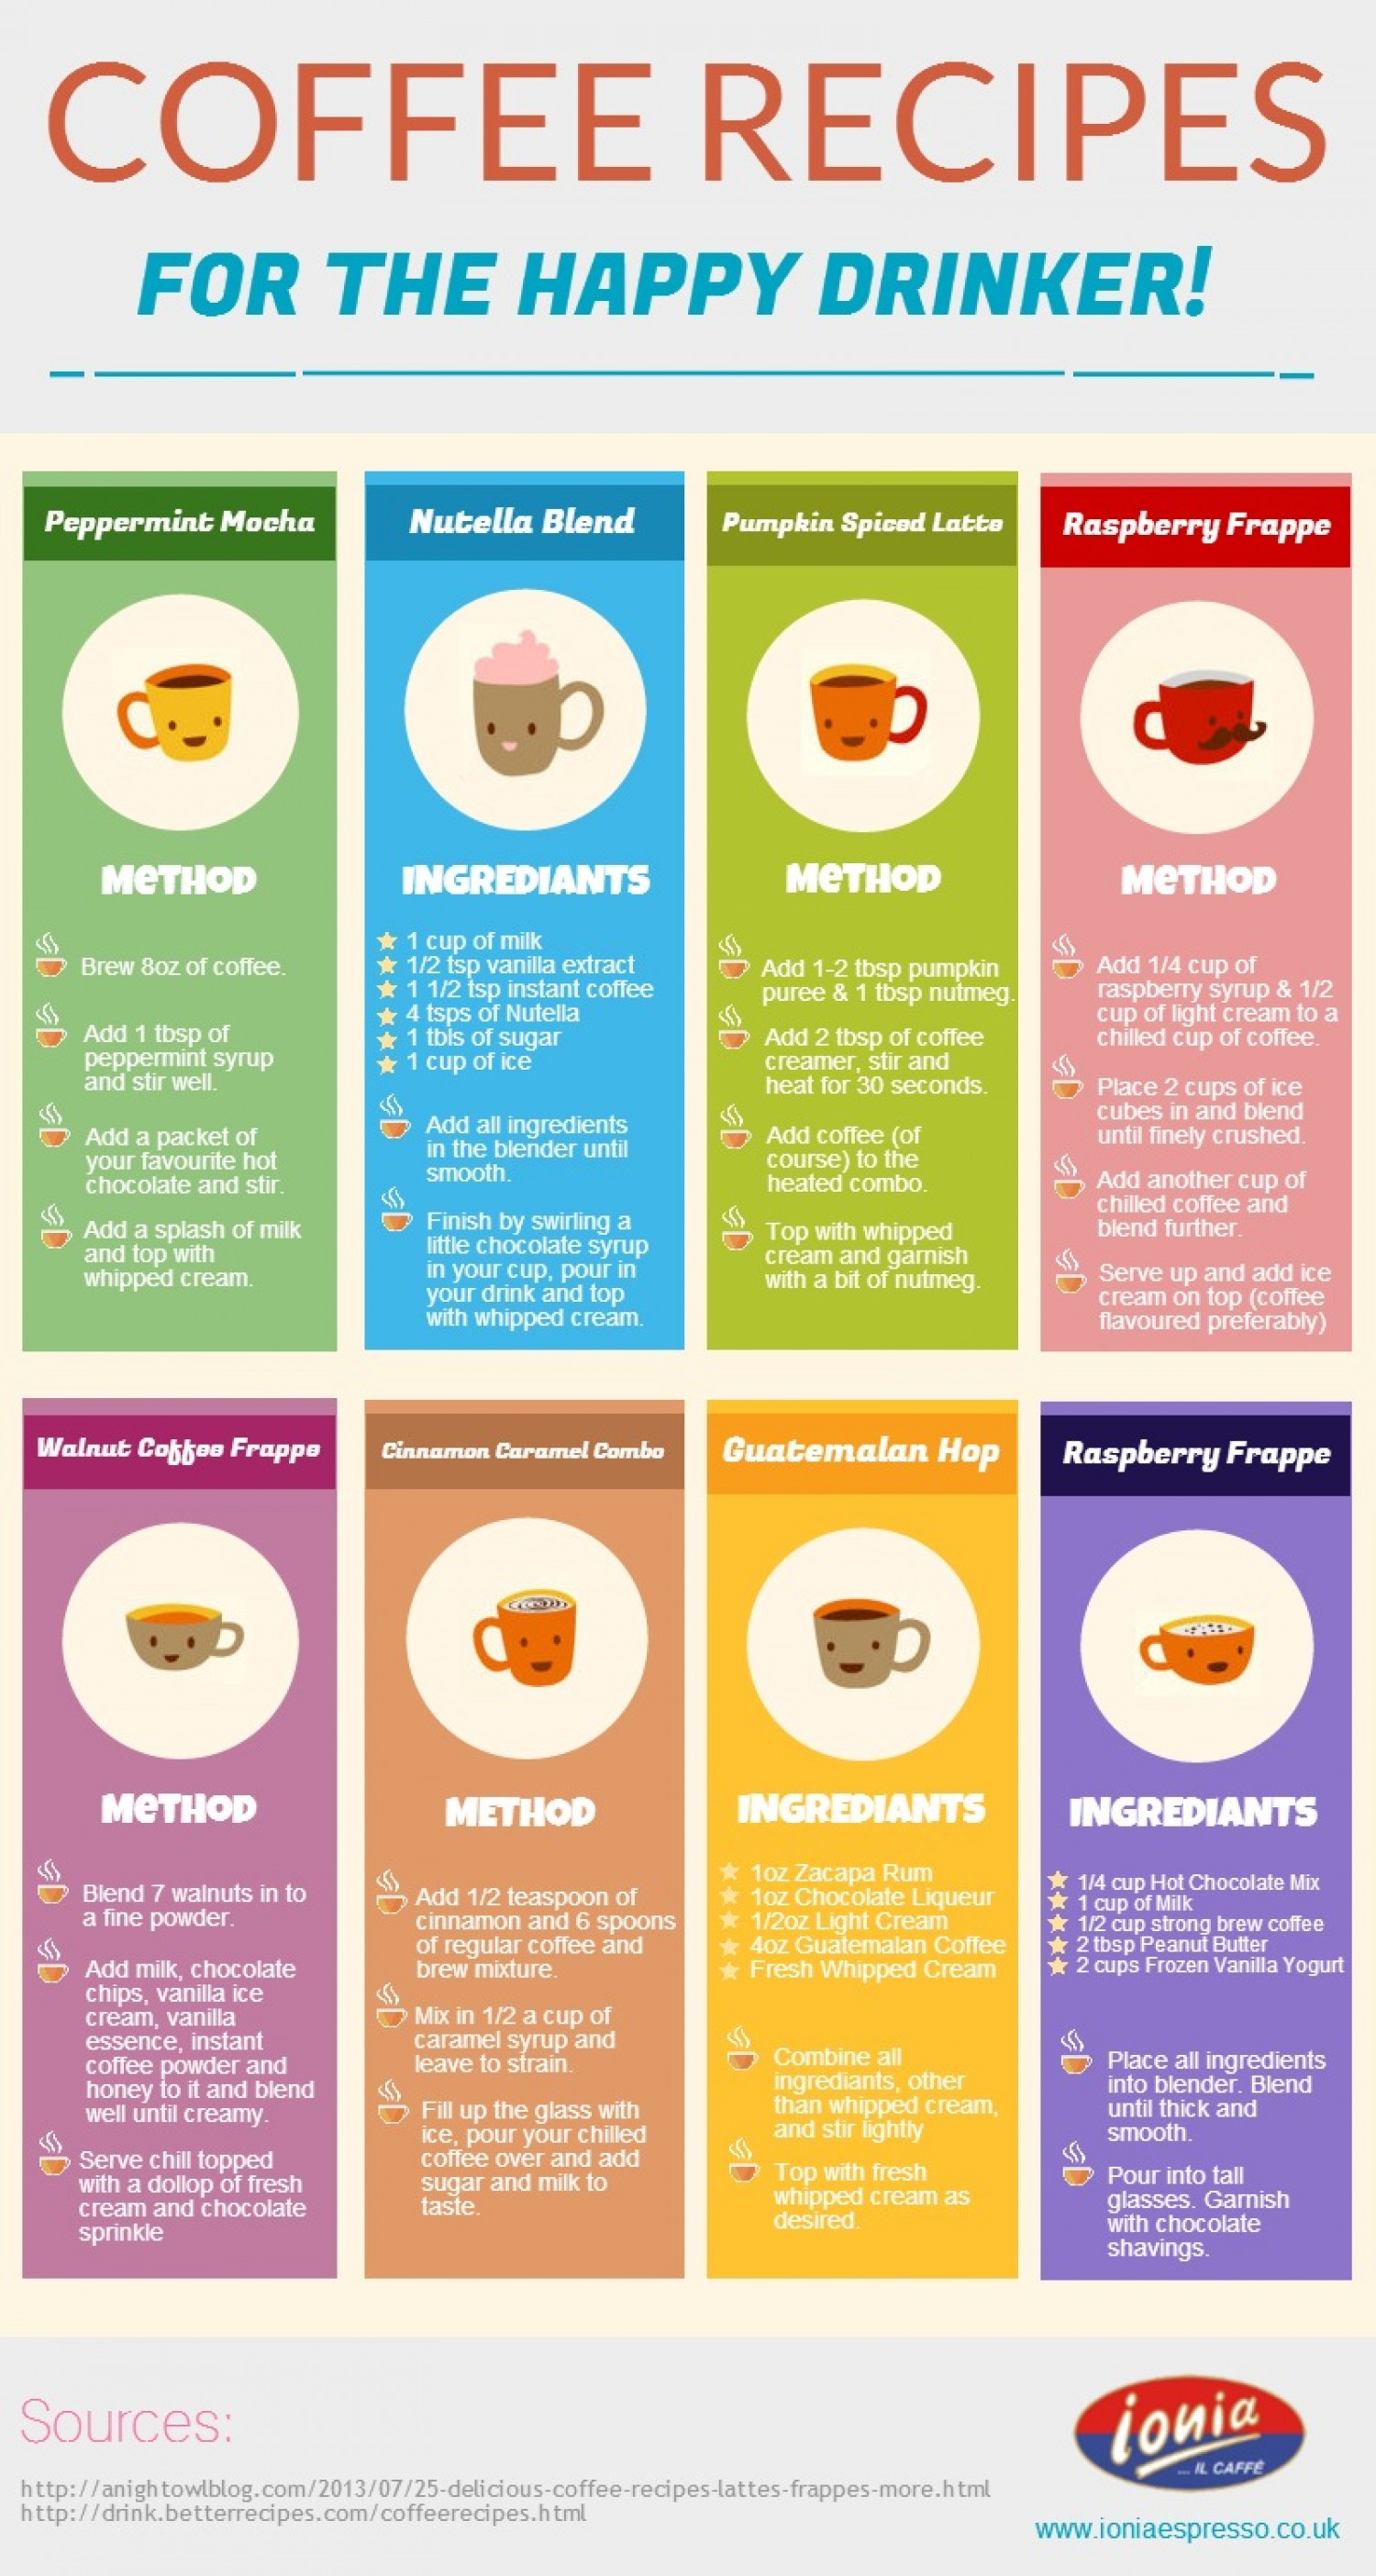 creative-coffee-recipes-for-the-happy-drinker_53f21785a46d8_w1500